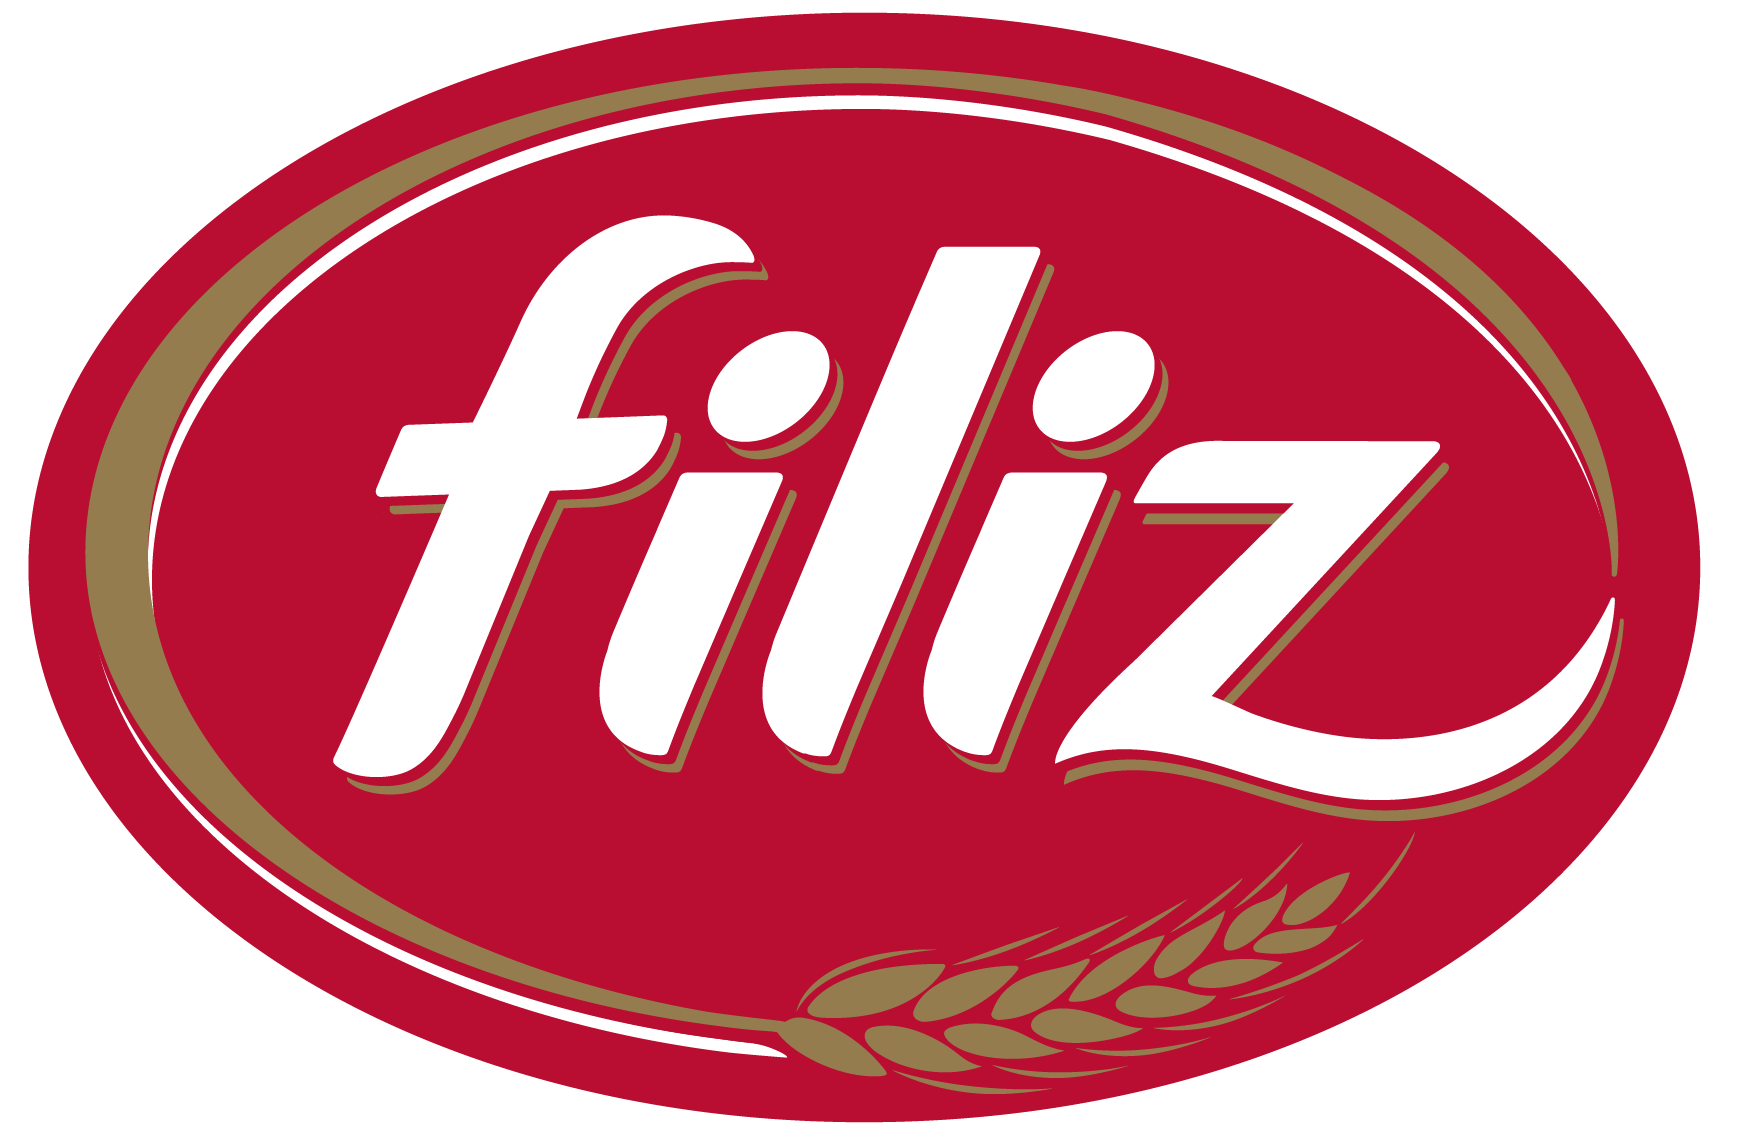 filiz-logo-son